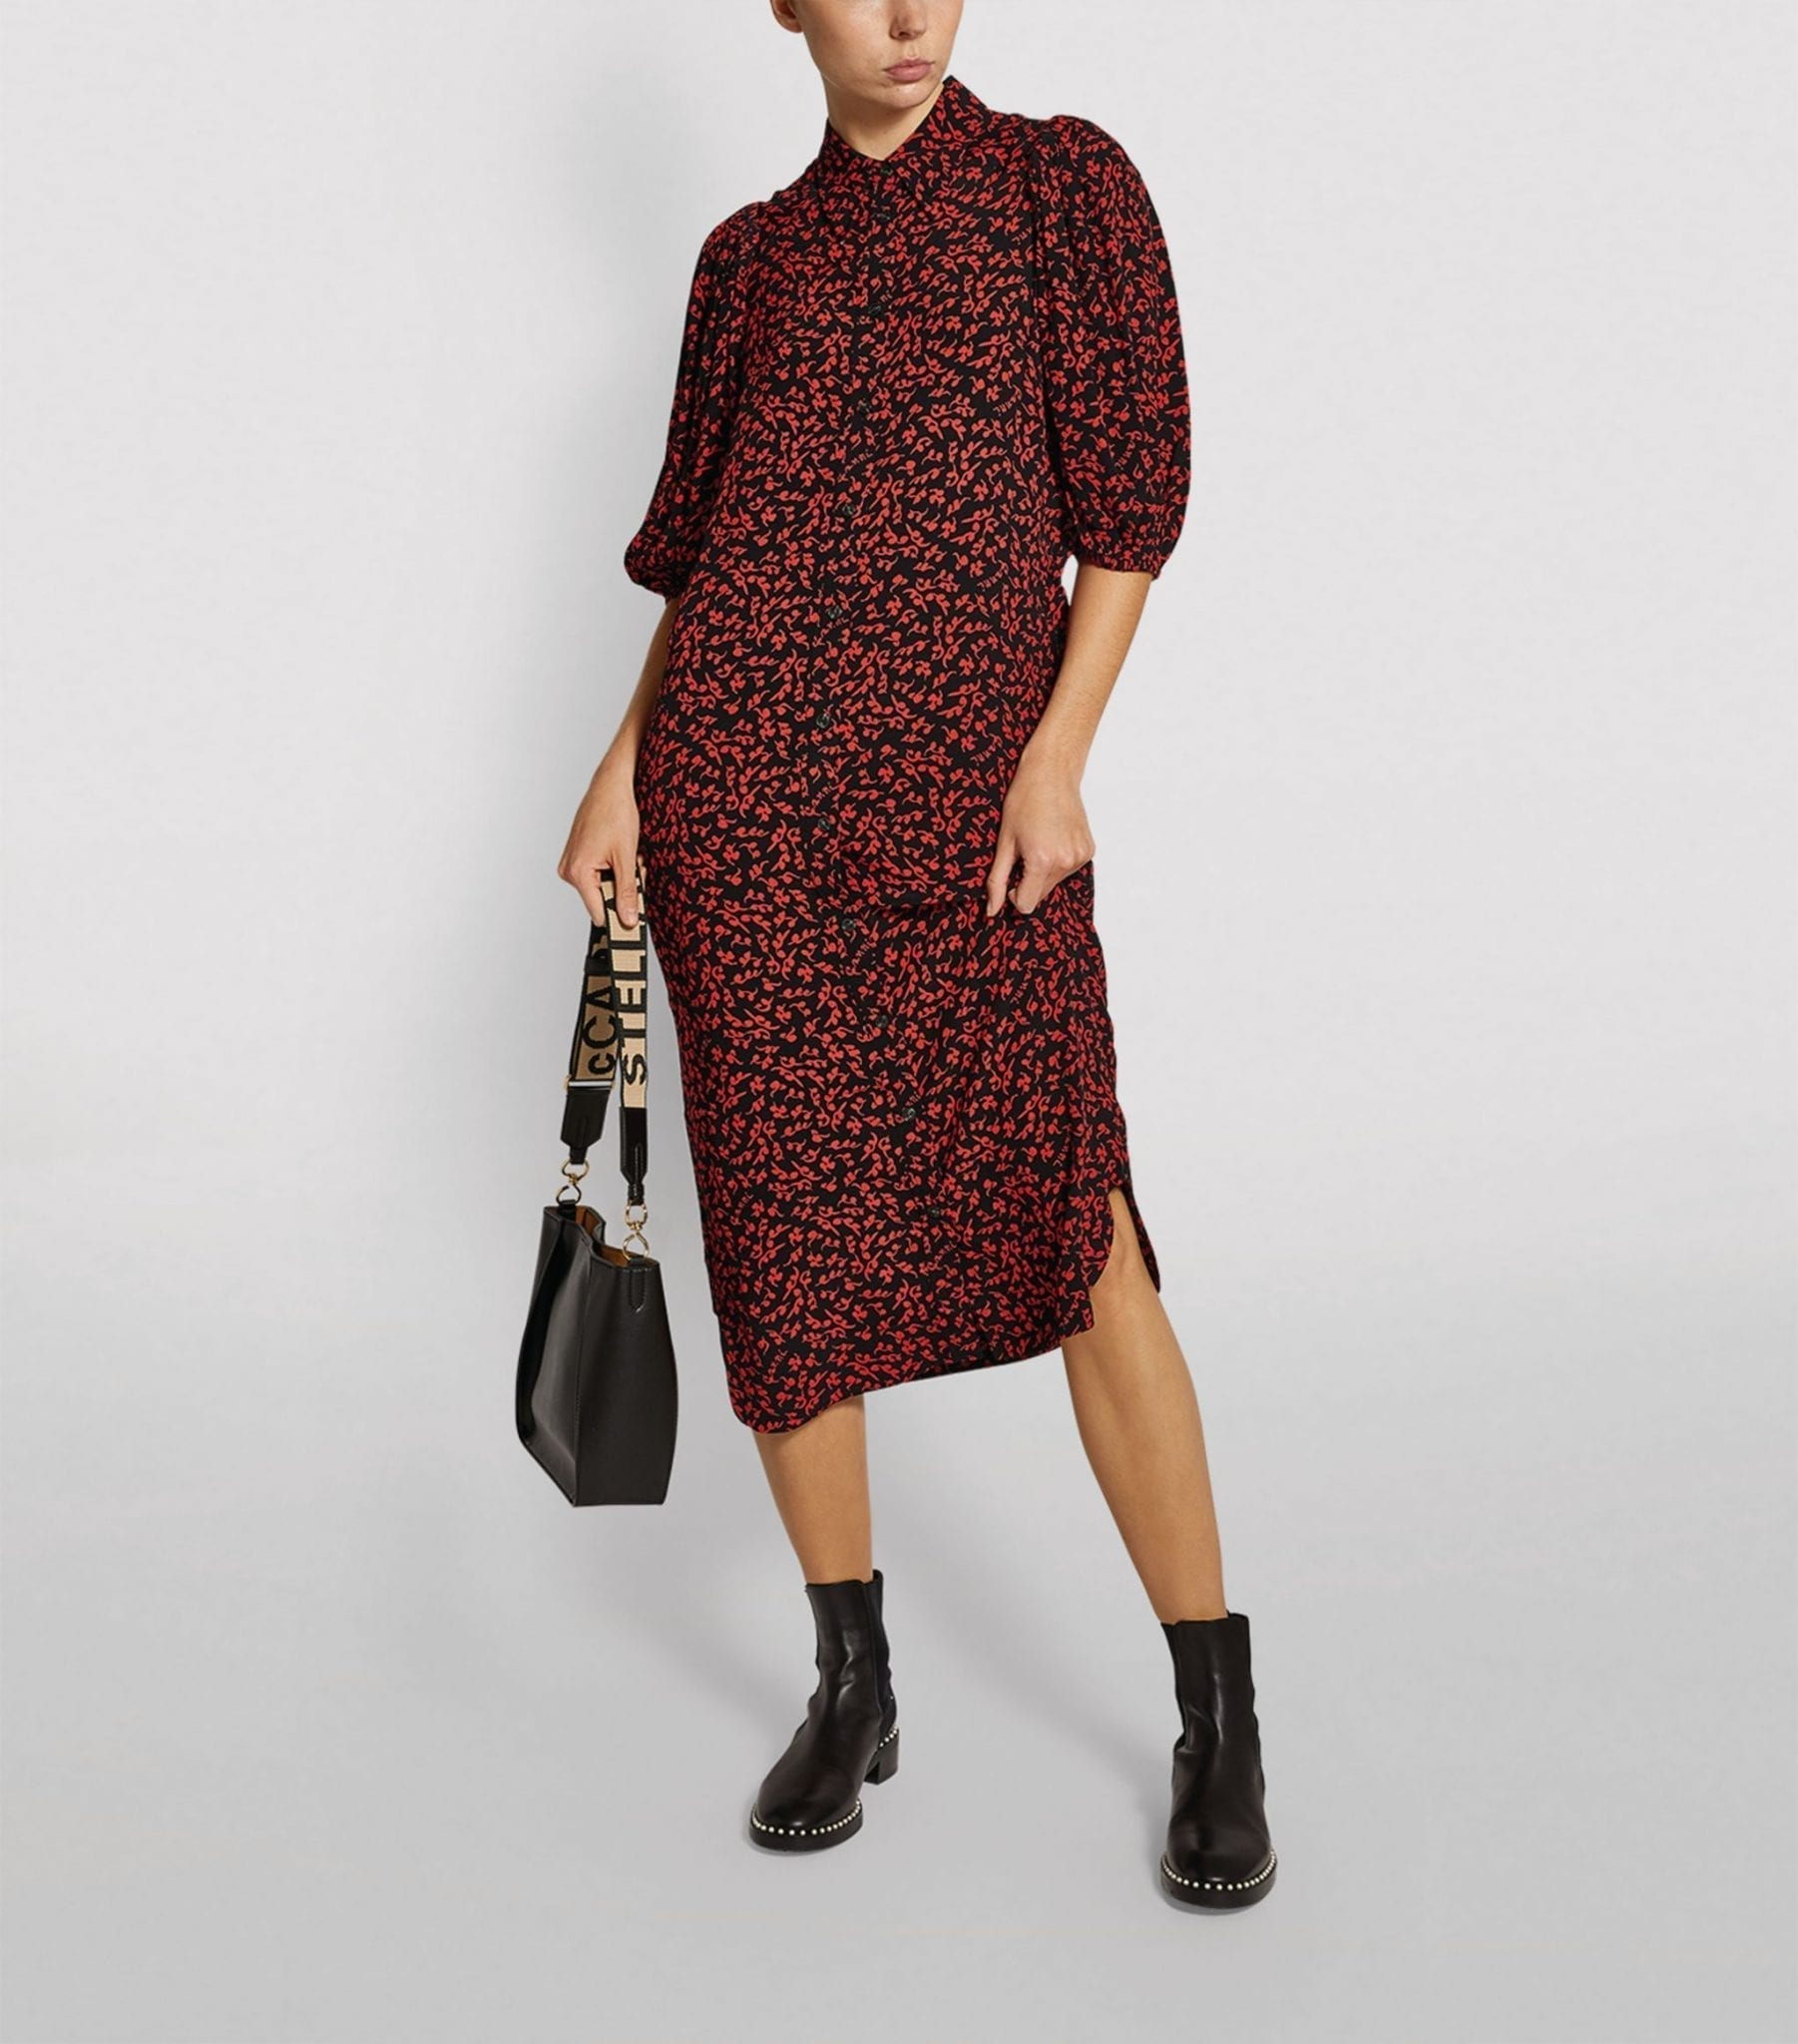 GANNI Printed Midi Dress